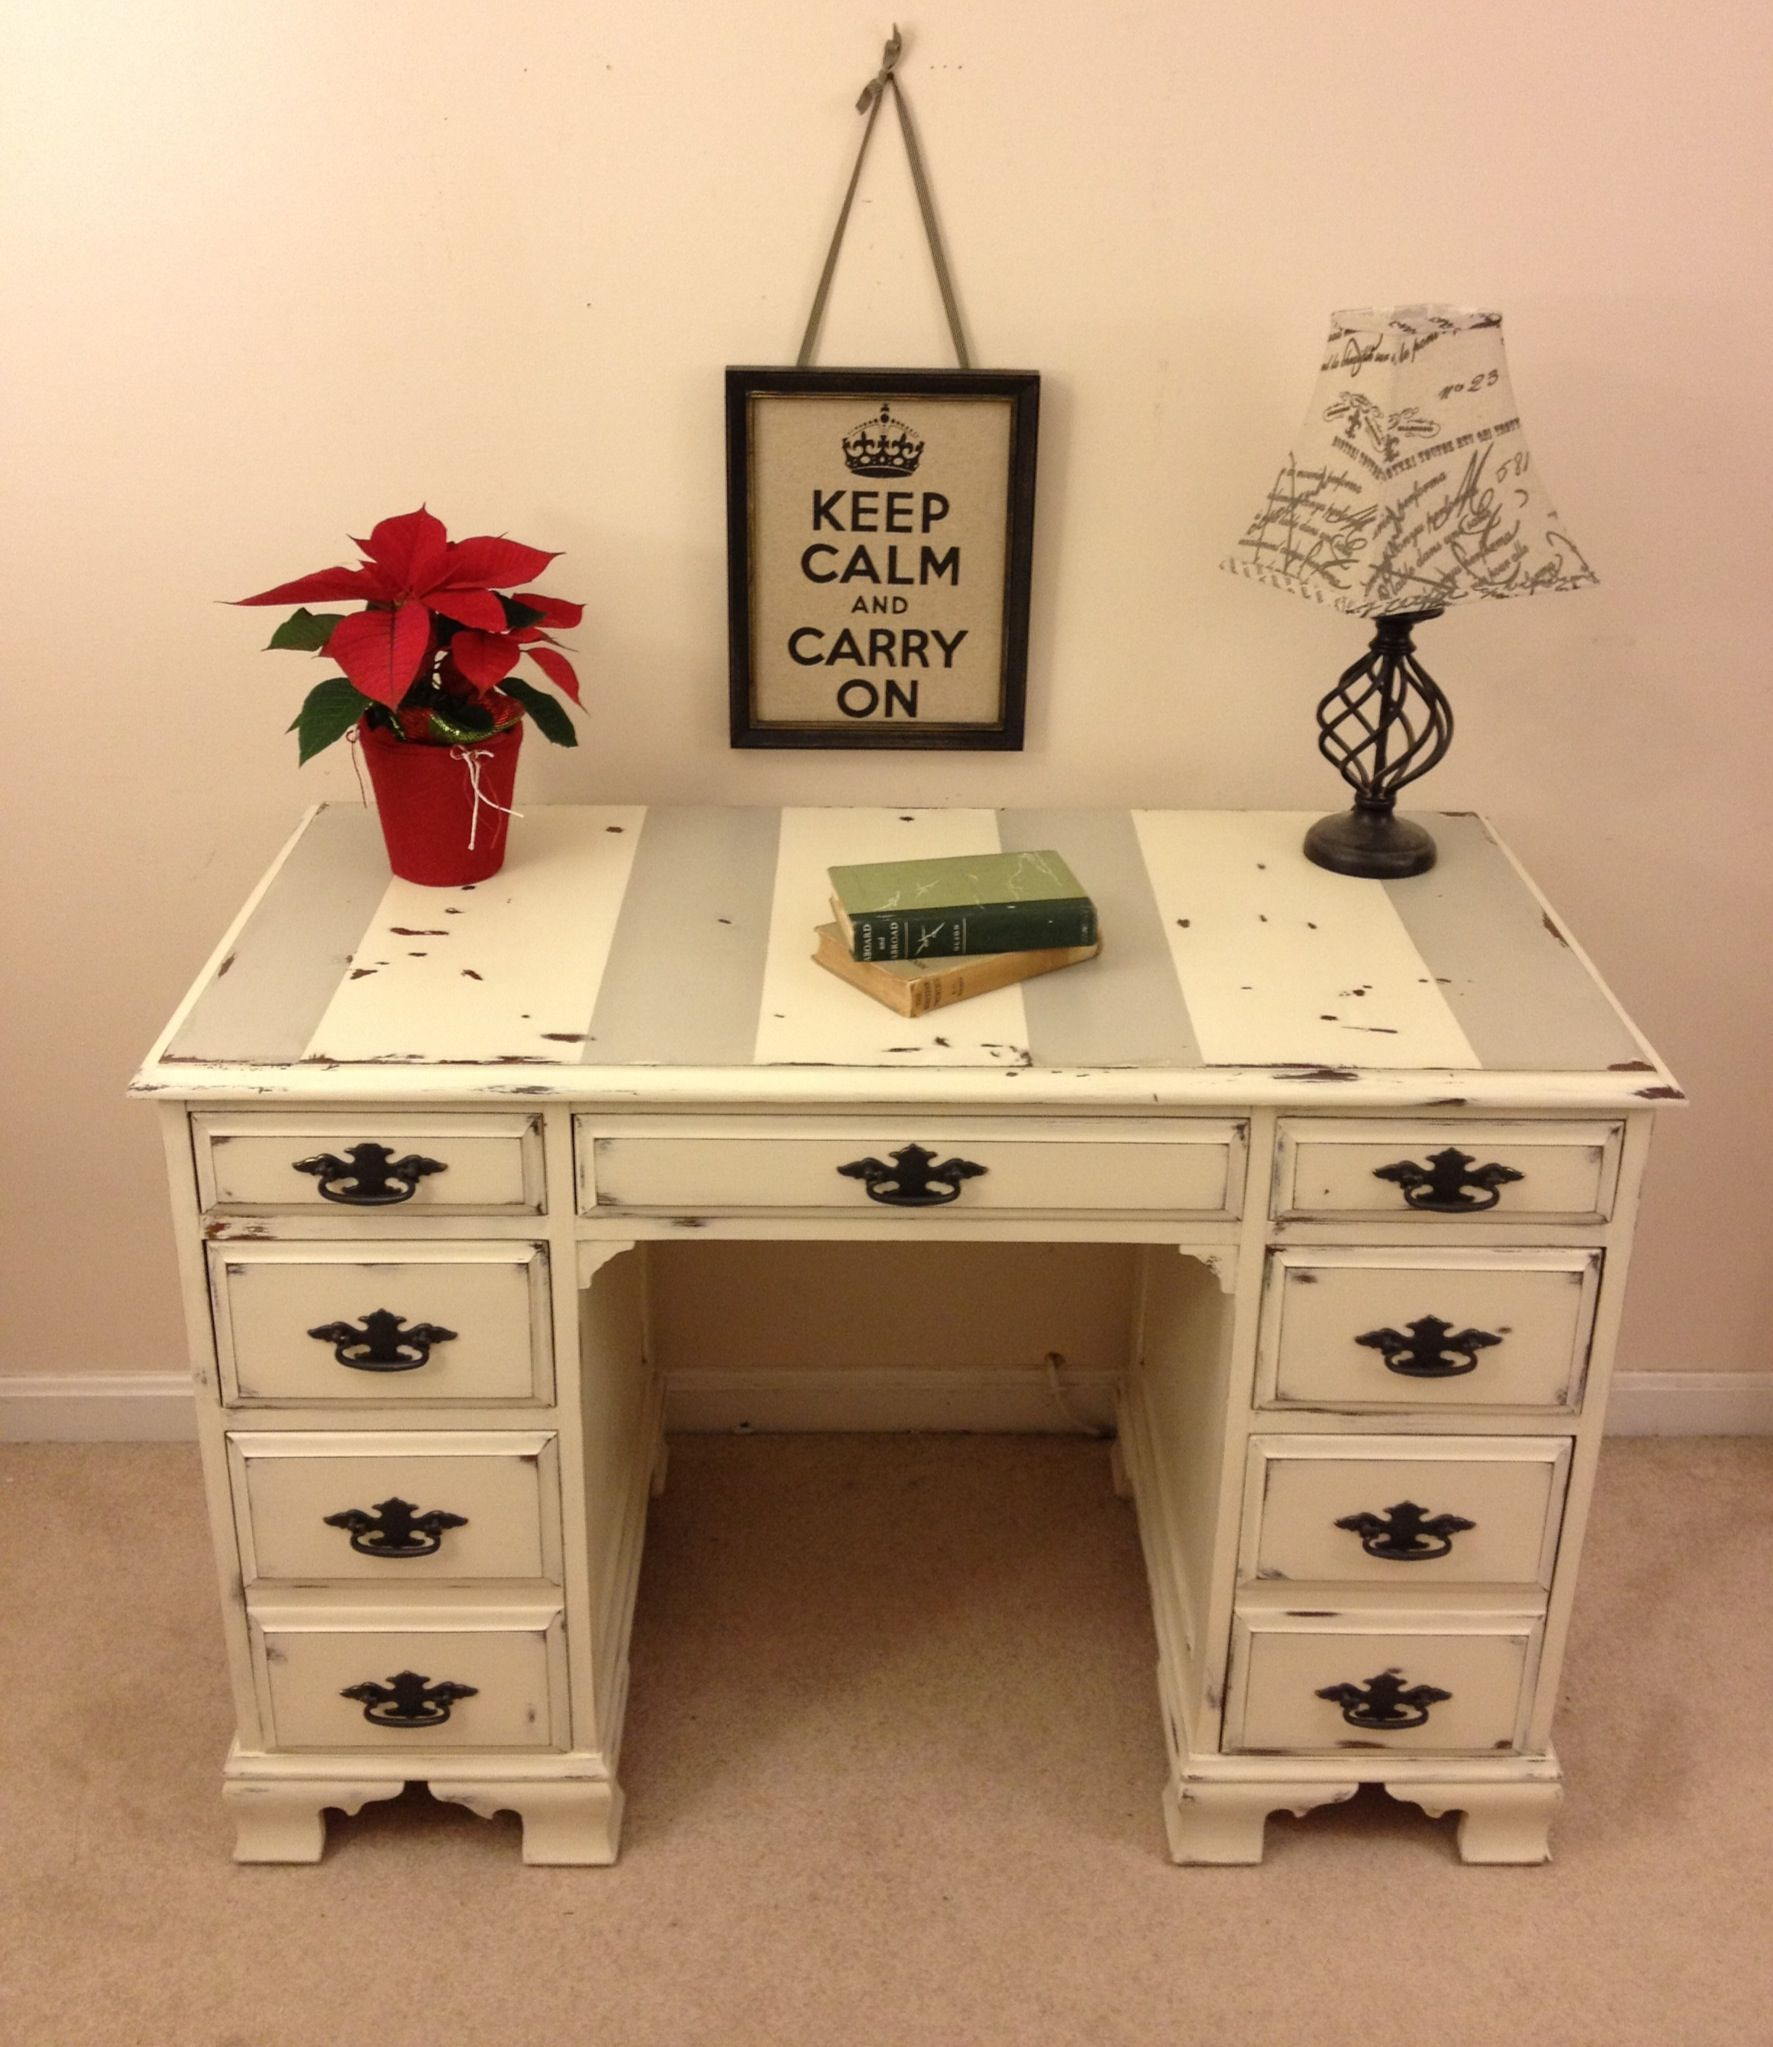 Superbe Shabby Chic Annie Sloan Chalk Paint Desk With Chippy Paint By Furniture  Alchemy; Distressed Desk, Painted Desk, White And Grey Painted Furniture,  ...